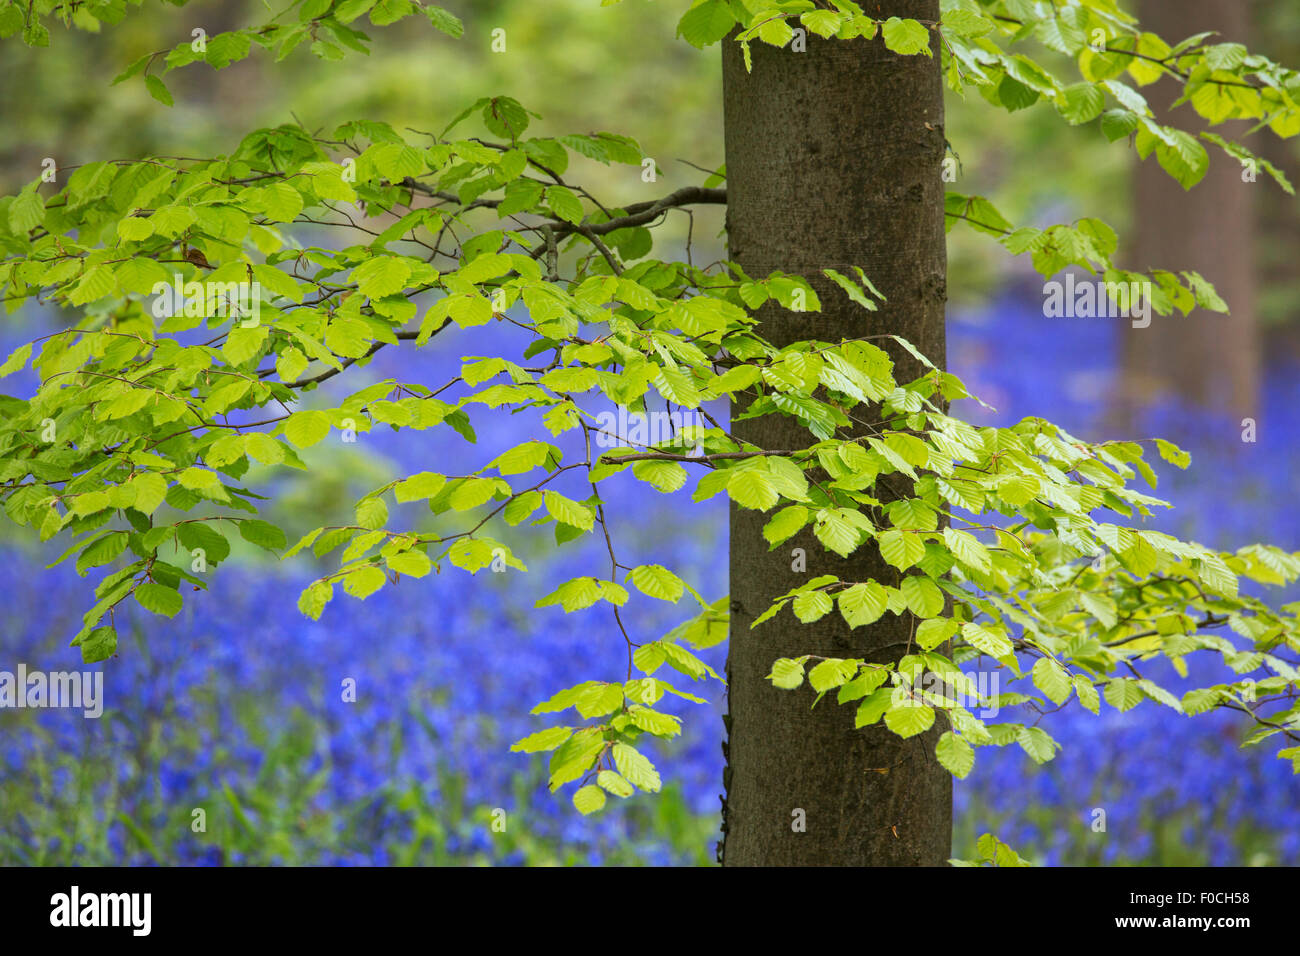 Foliage of beech tree (Fagus sylvatica) and bluebells (Endymion nonscriptus) in flower in broadleaf forest in spring - Stock Image